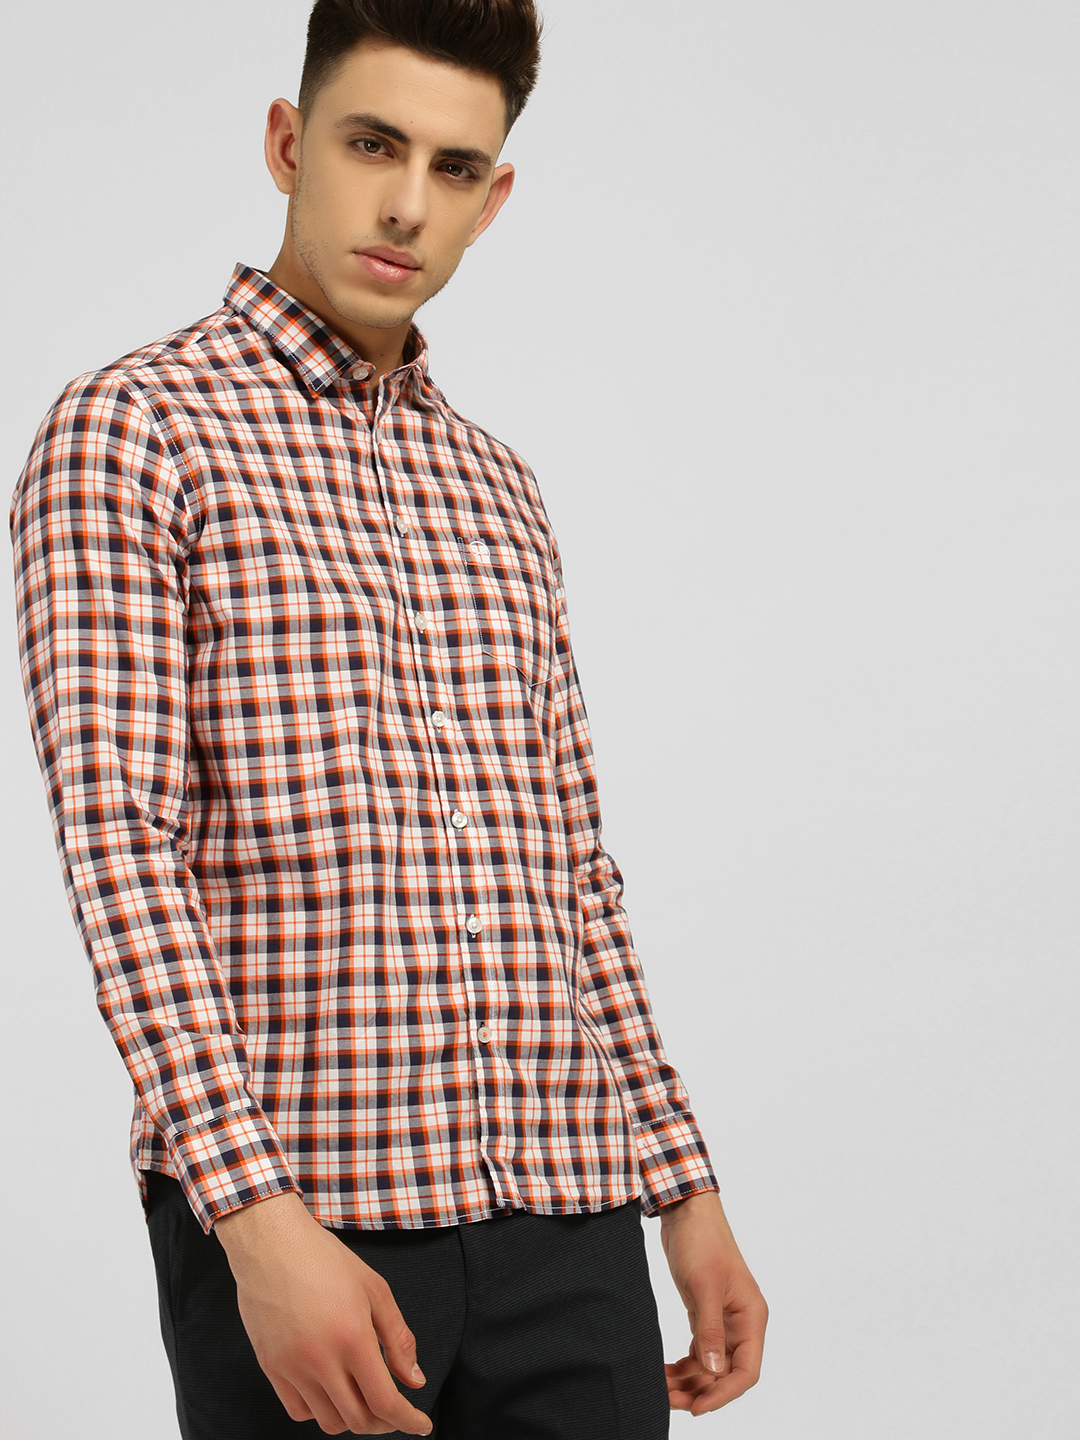 SCULLERS Red Multi Check Casual Shirt 1